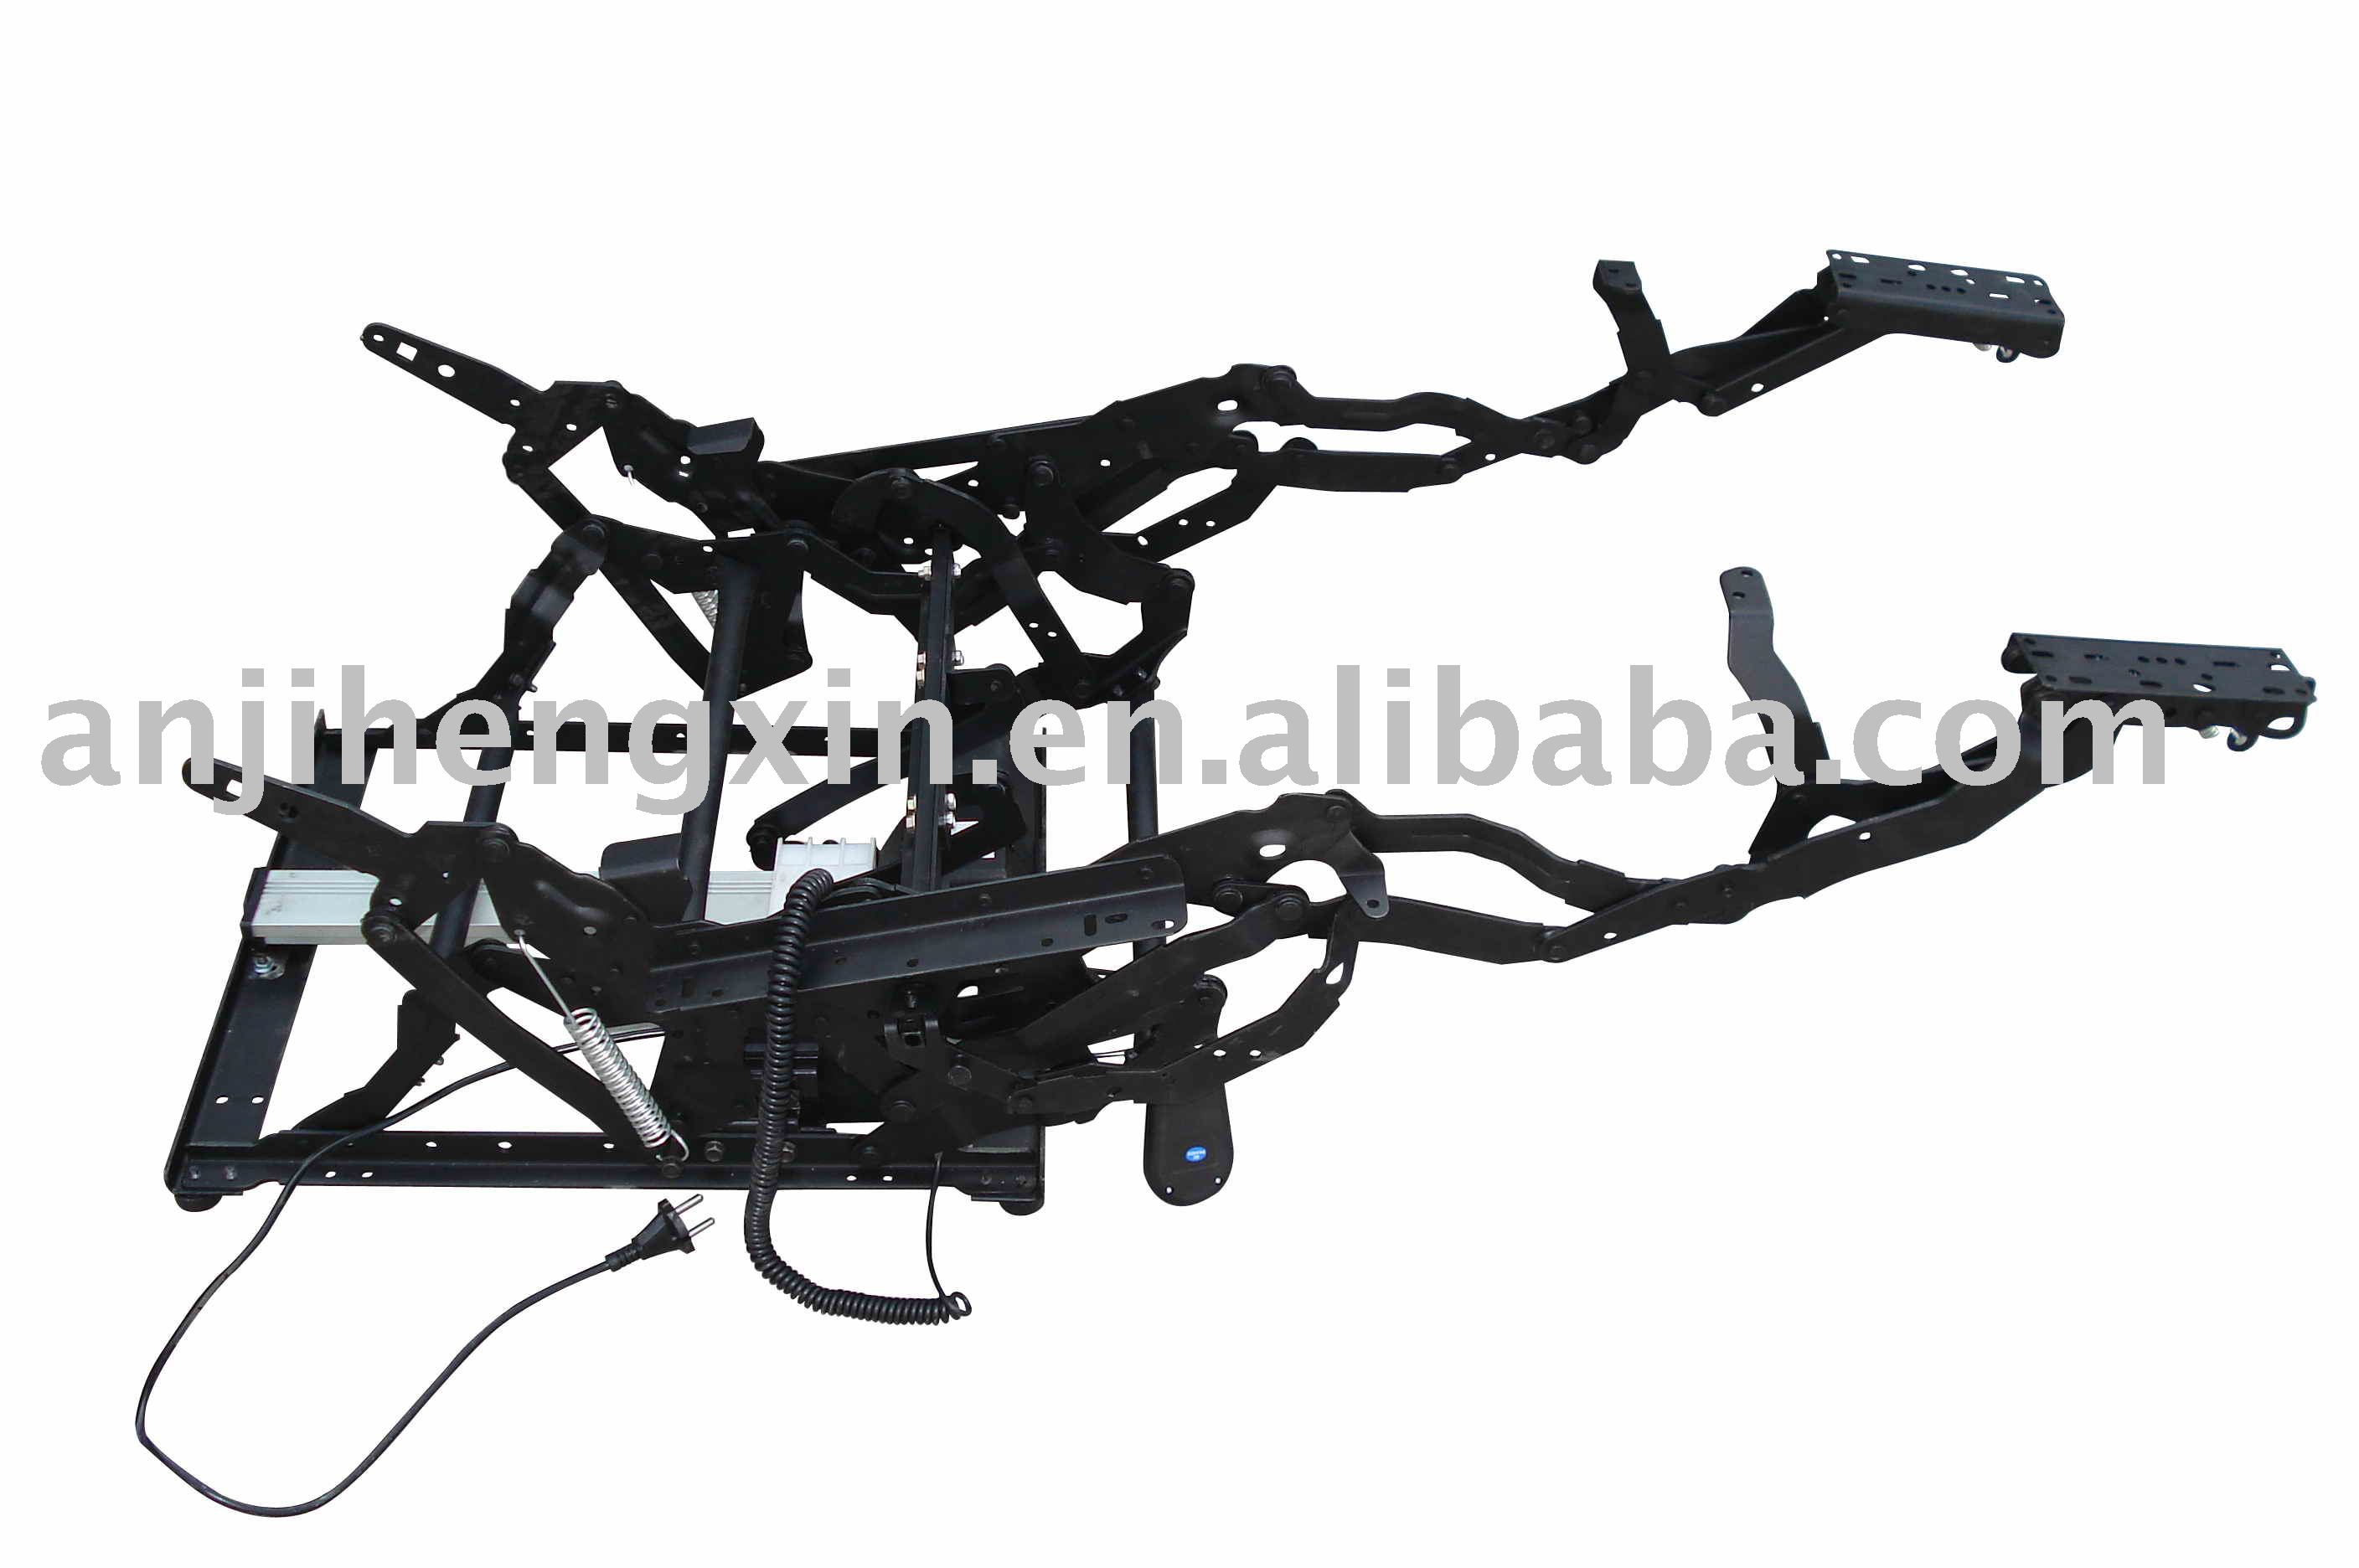 Recliner Sofa Mechanism Recliner Sofa Mechanism Suppliers and Manufacturers at Alibaba.com  sc 1 st  Alibaba & Recliner Sofa Mechanism Recliner Sofa Mechanism Suppliers and ... islam-shia.org